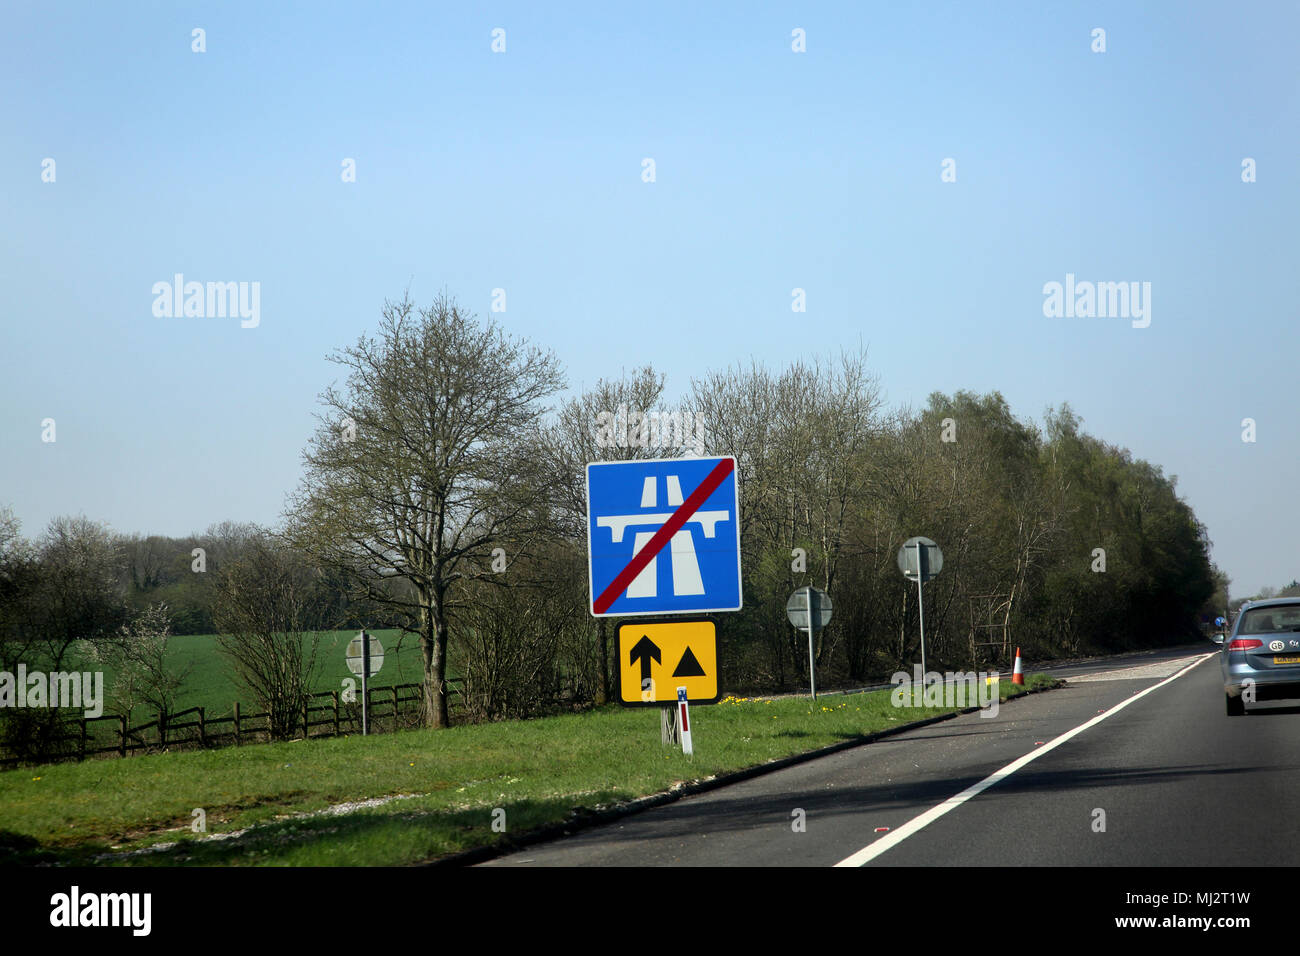 Wiltshire England Motorway Ends Sign and Emergency Diversion Symbol - Stock Image